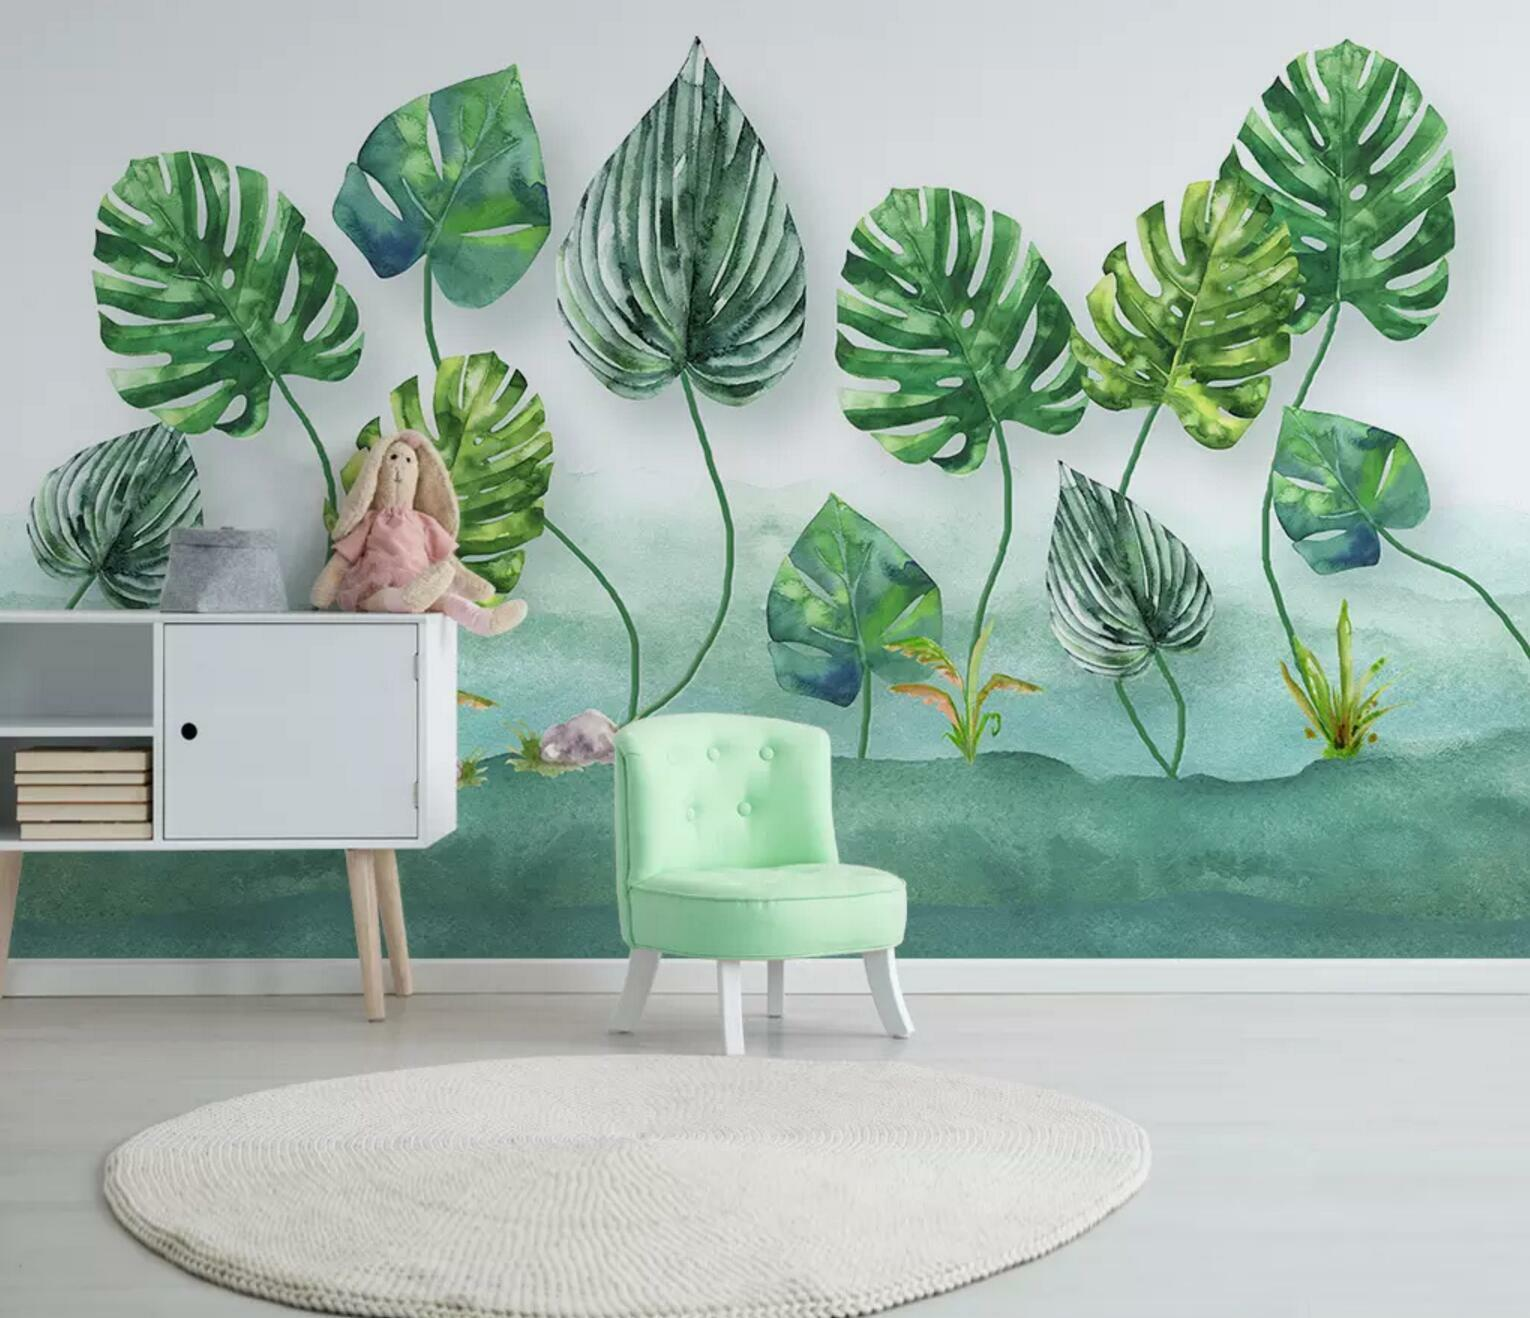 3D Grün Leaf Lawn 56 Wall Paper Exclusive MXY Wallpaper Mural Decal Indoor wall